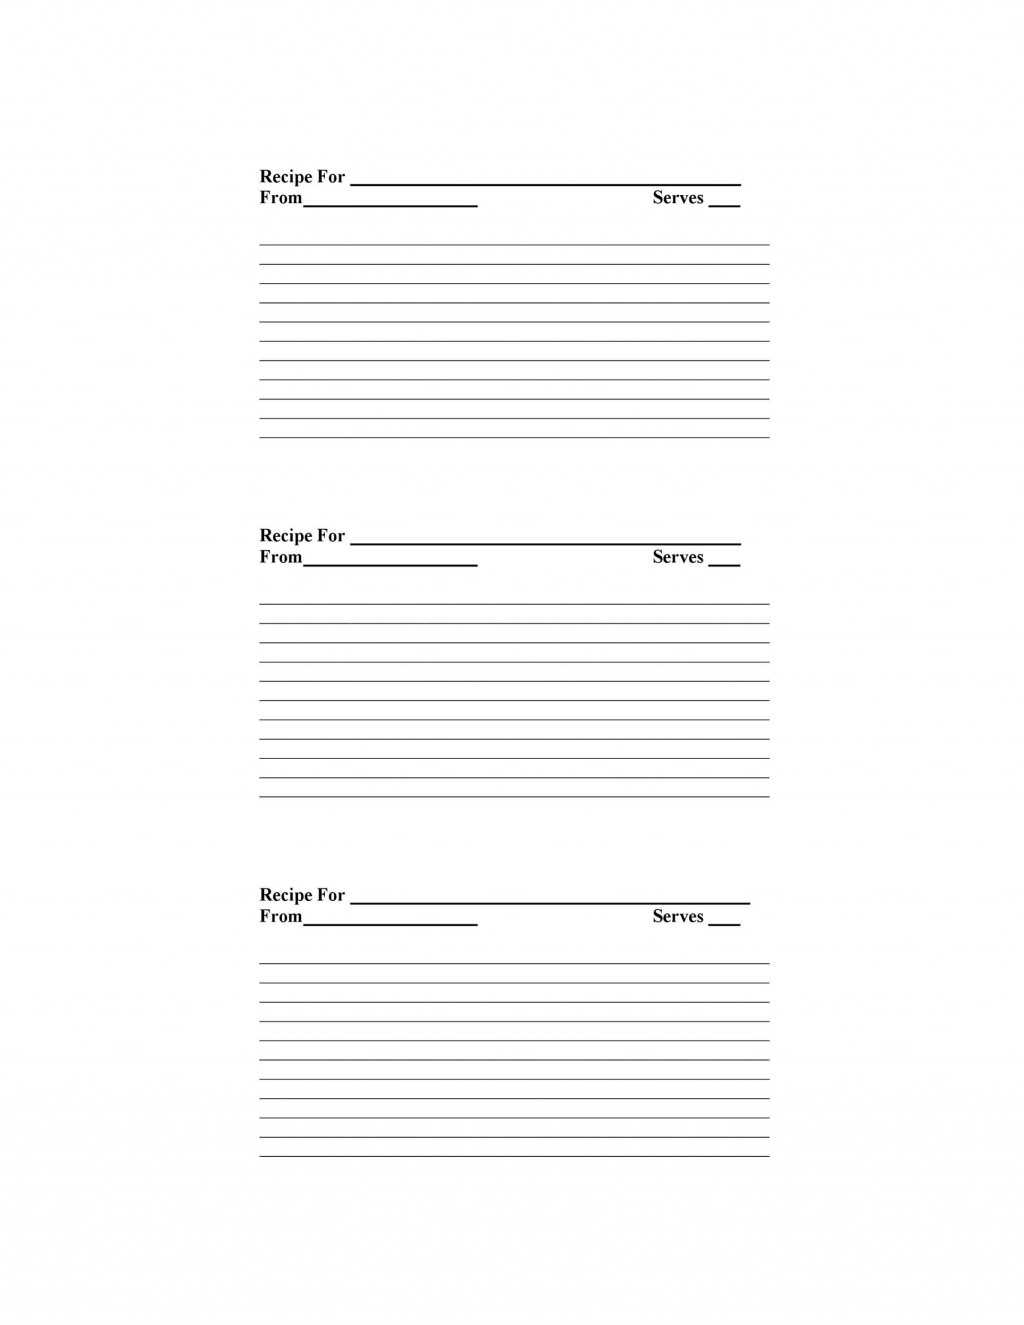 009 Unbelievable Free Recipe Template For Word High Def  Book Editable Card Microsoft 4x6 PageLarge